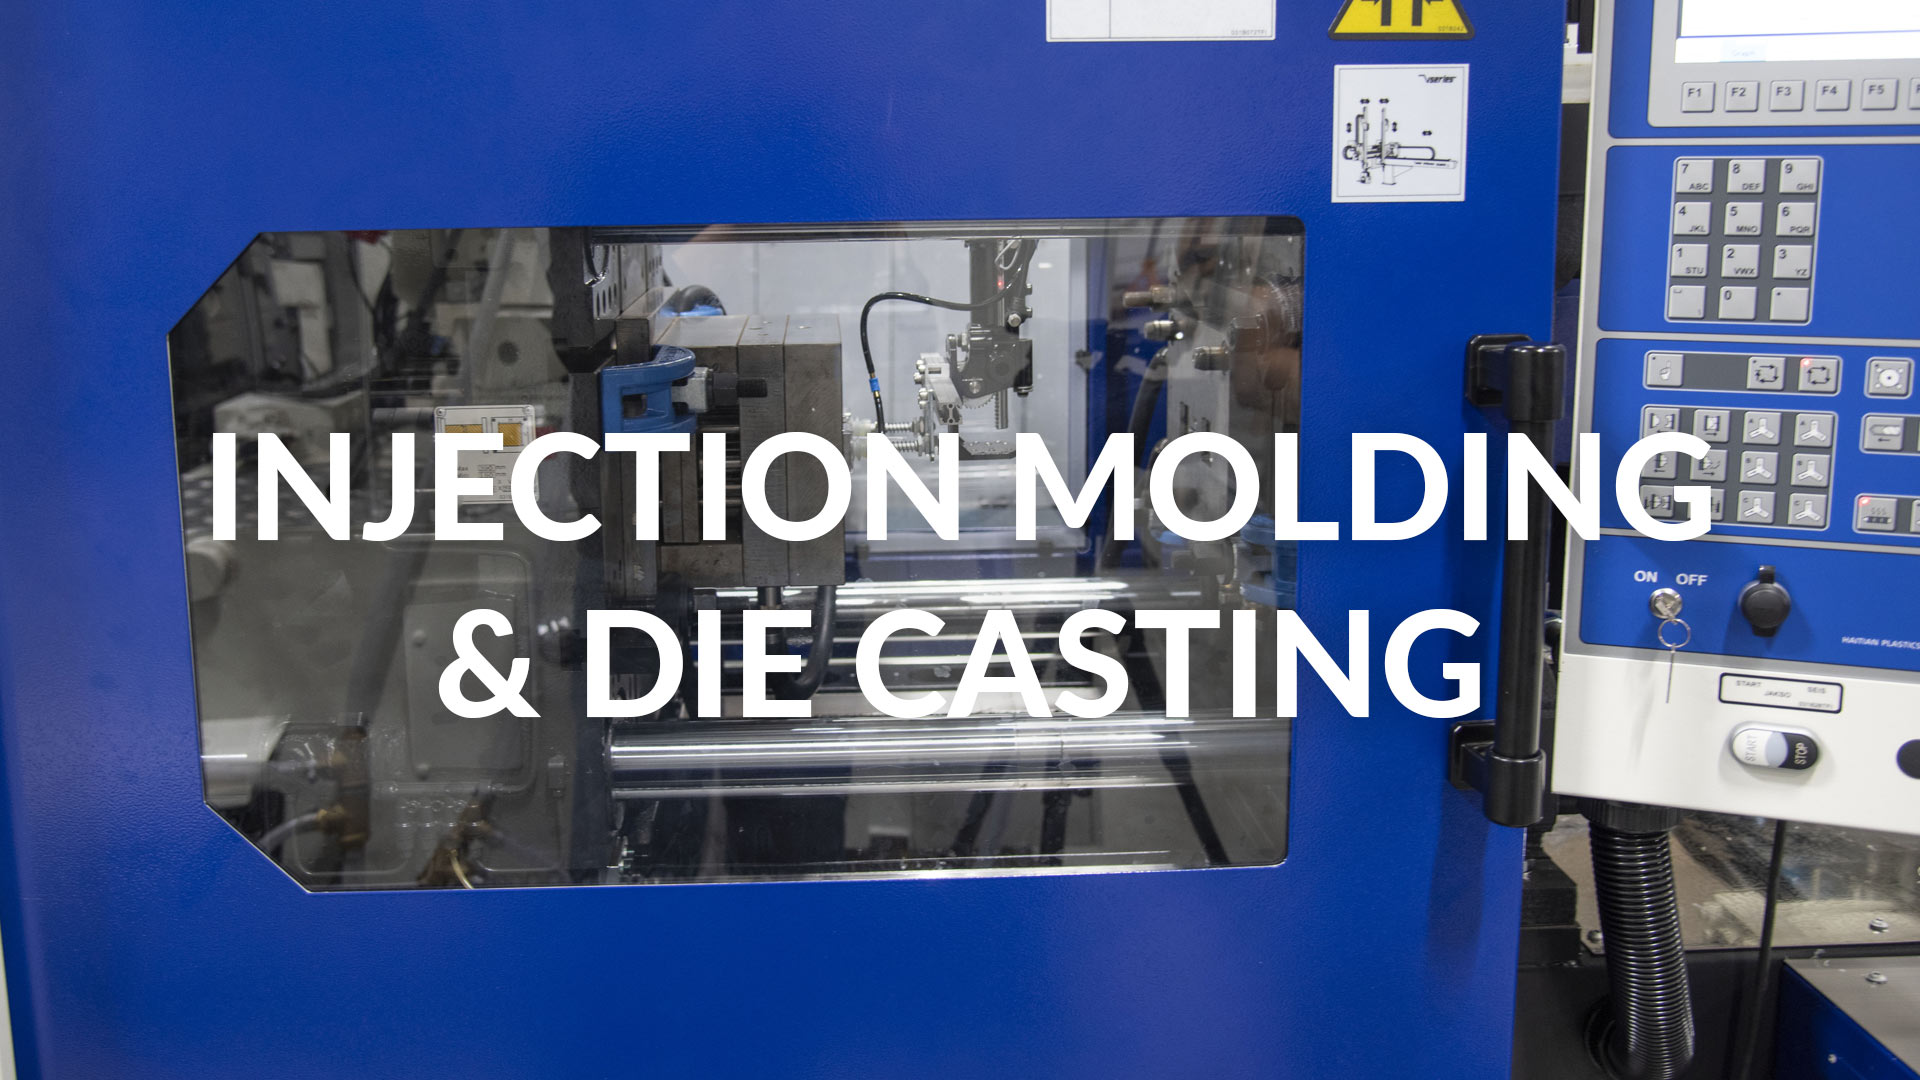 Pdat - Injection molding & Die casting